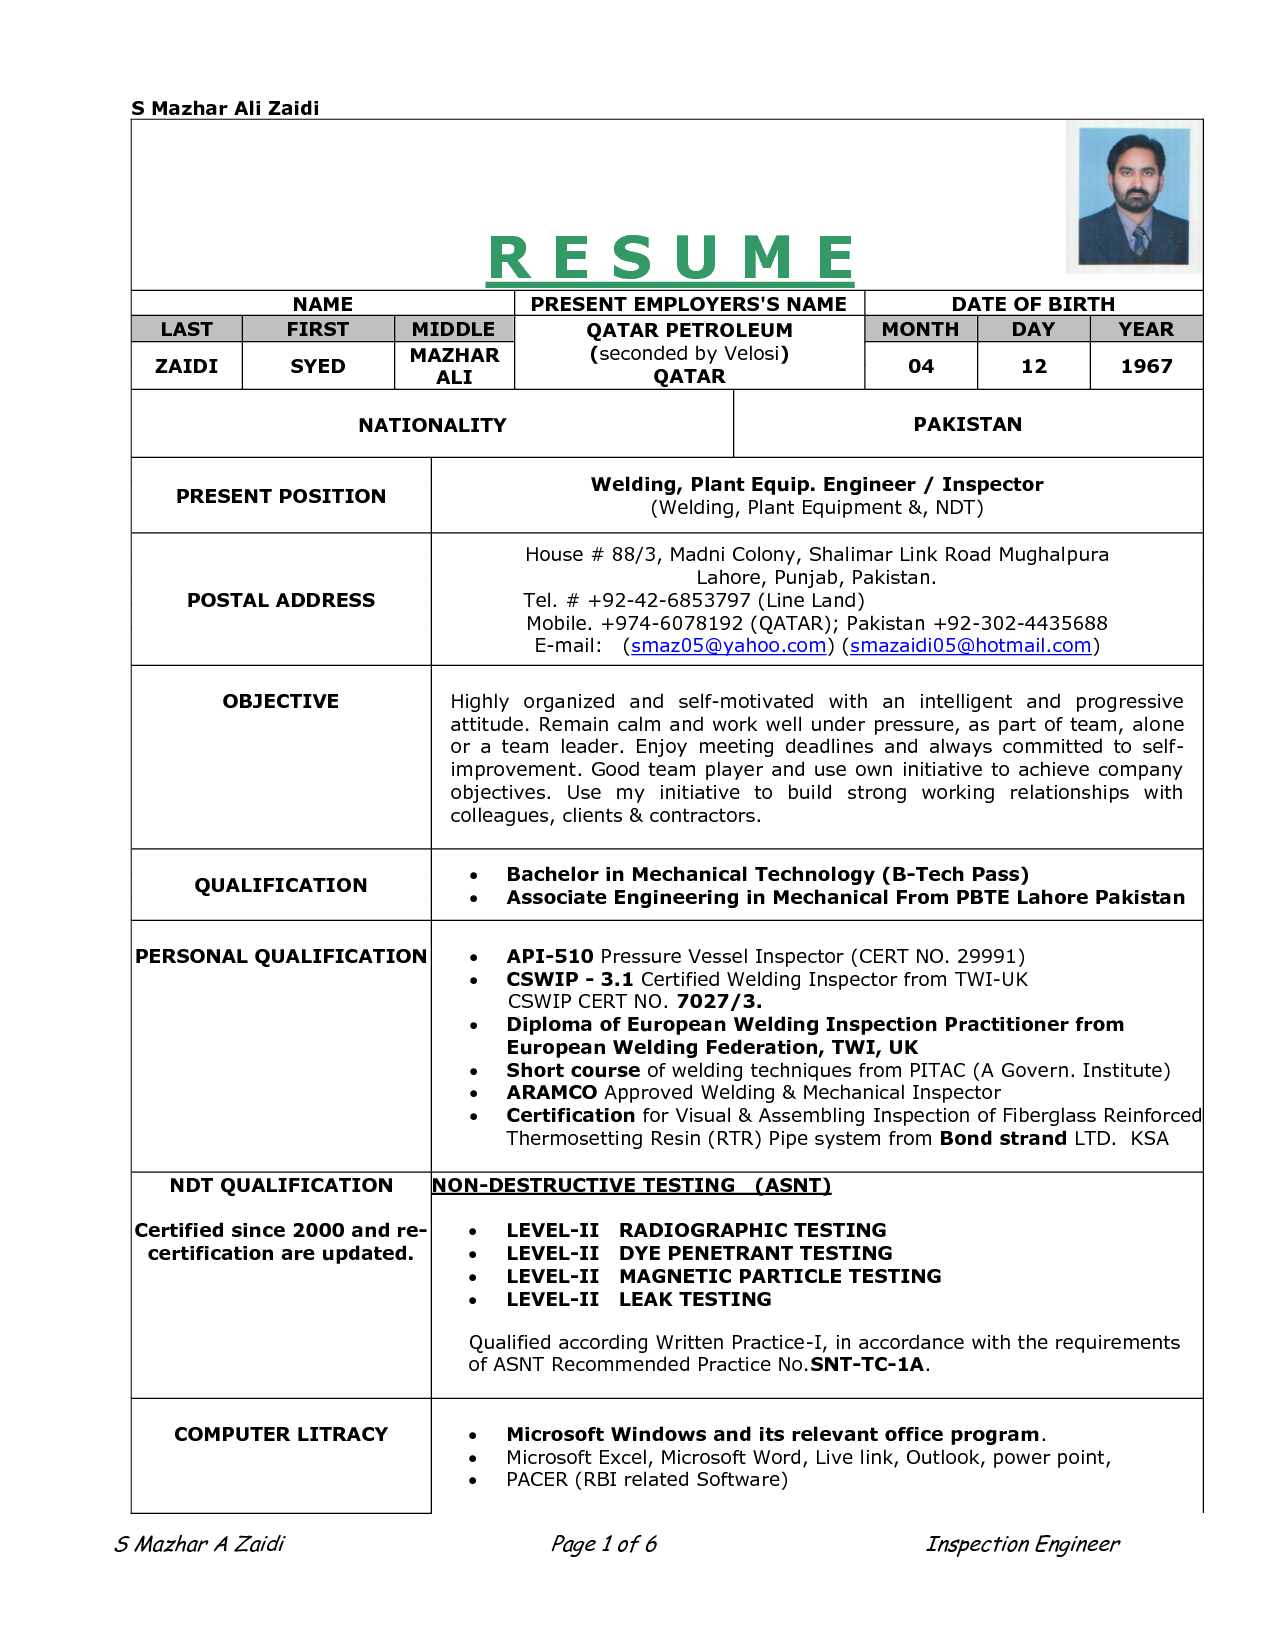 Resume For Welder Job Re Work Procedure Resume Doc Download Legal Documents Re